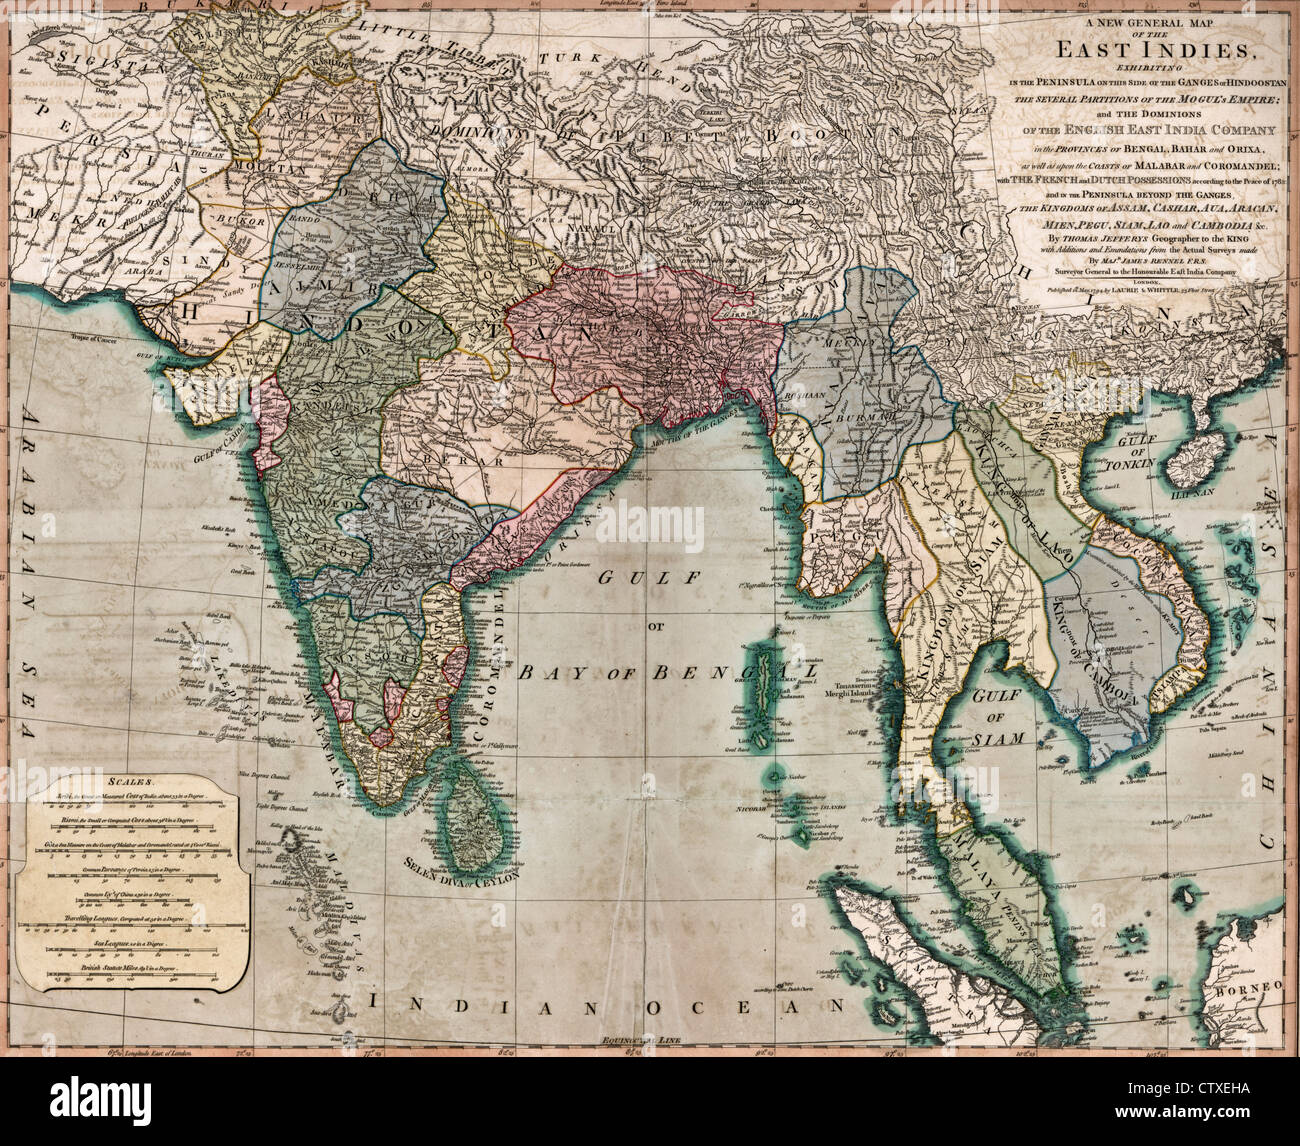 A general map of the East Indies, circa 1794 - Stock Image